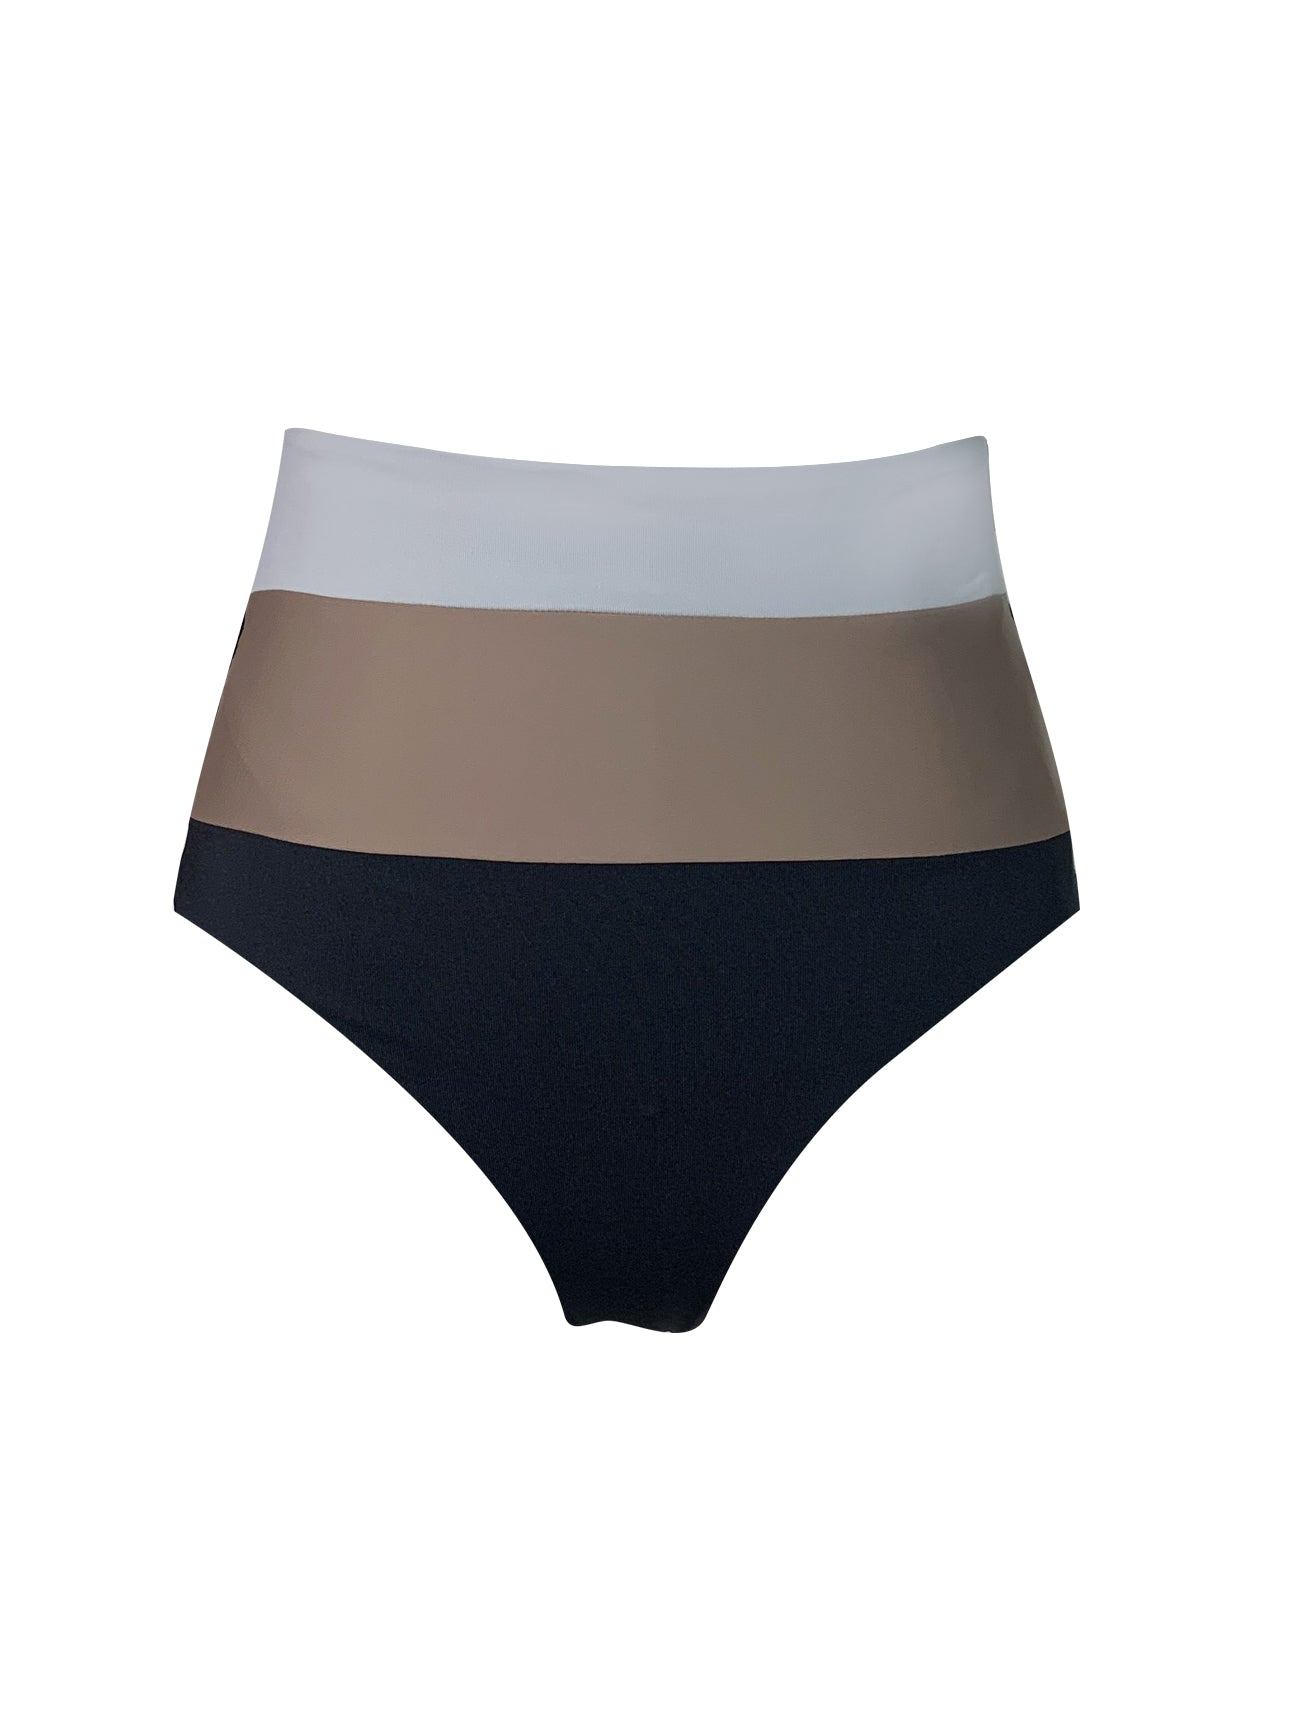 KUTA REVERSIBLE HIGH WAIST BOTTOM | NEUTRAL TRIO